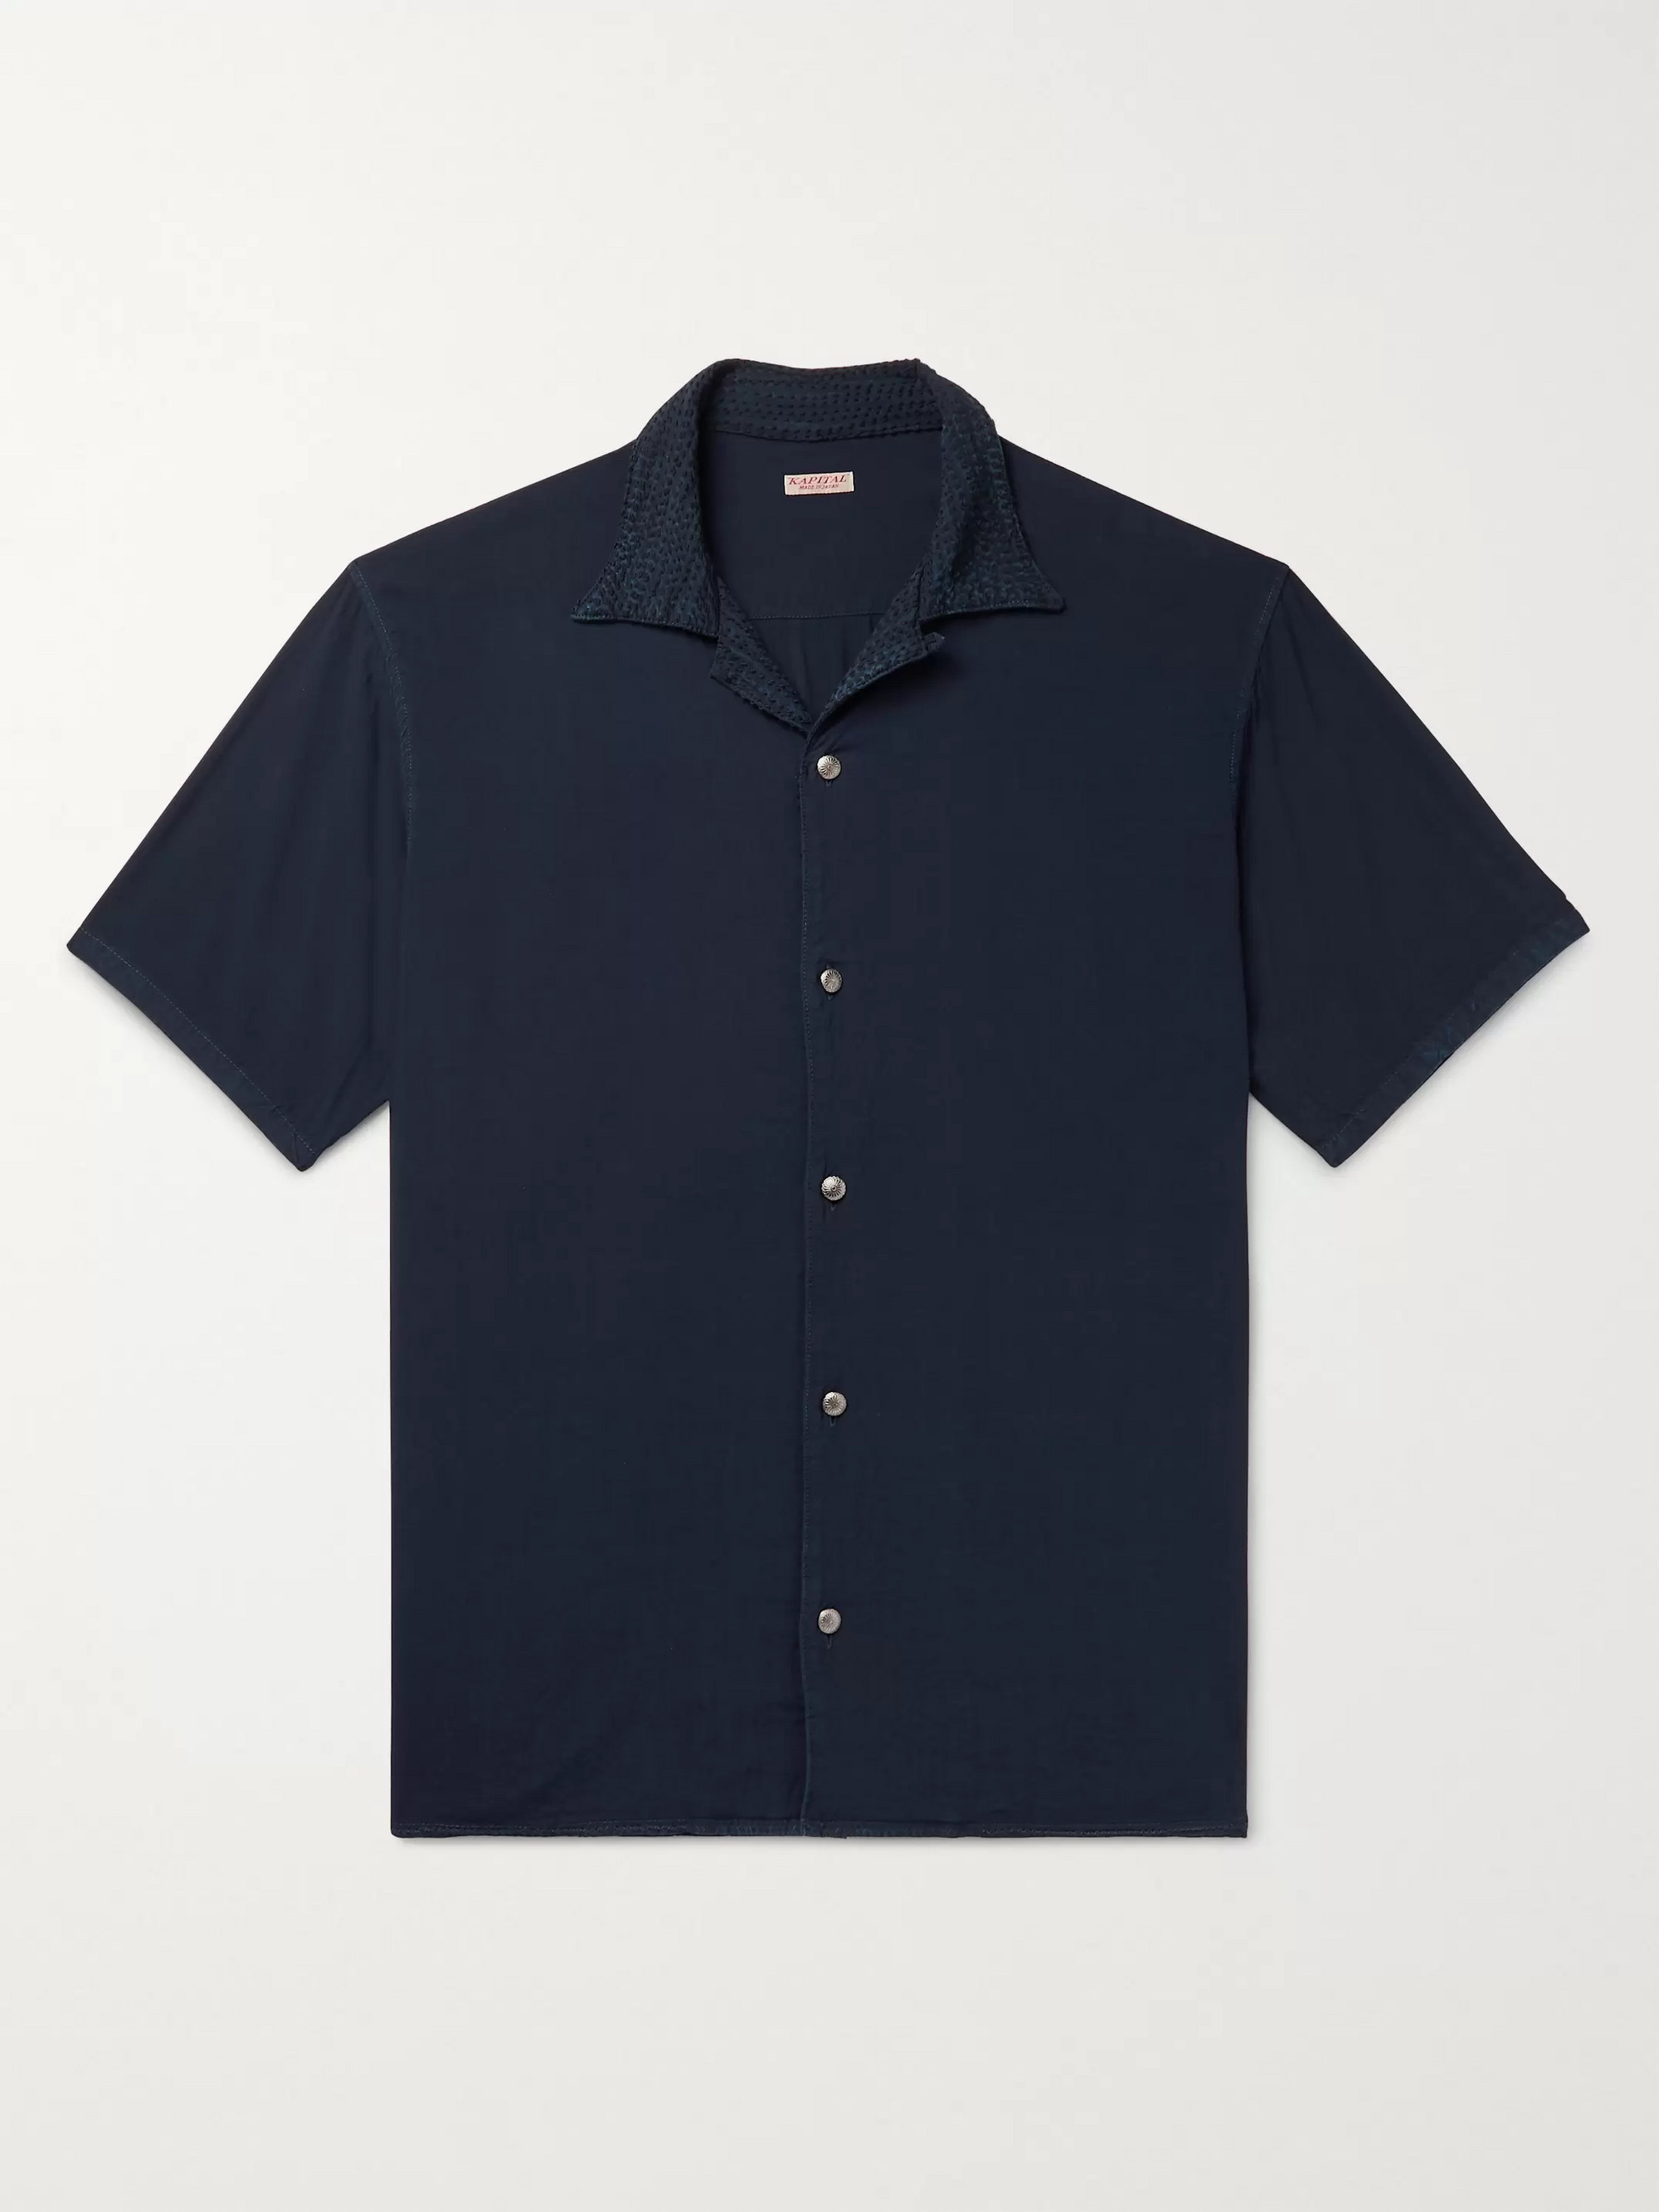 KAPITAL Camp-Collar Embroidered Voile Shirt